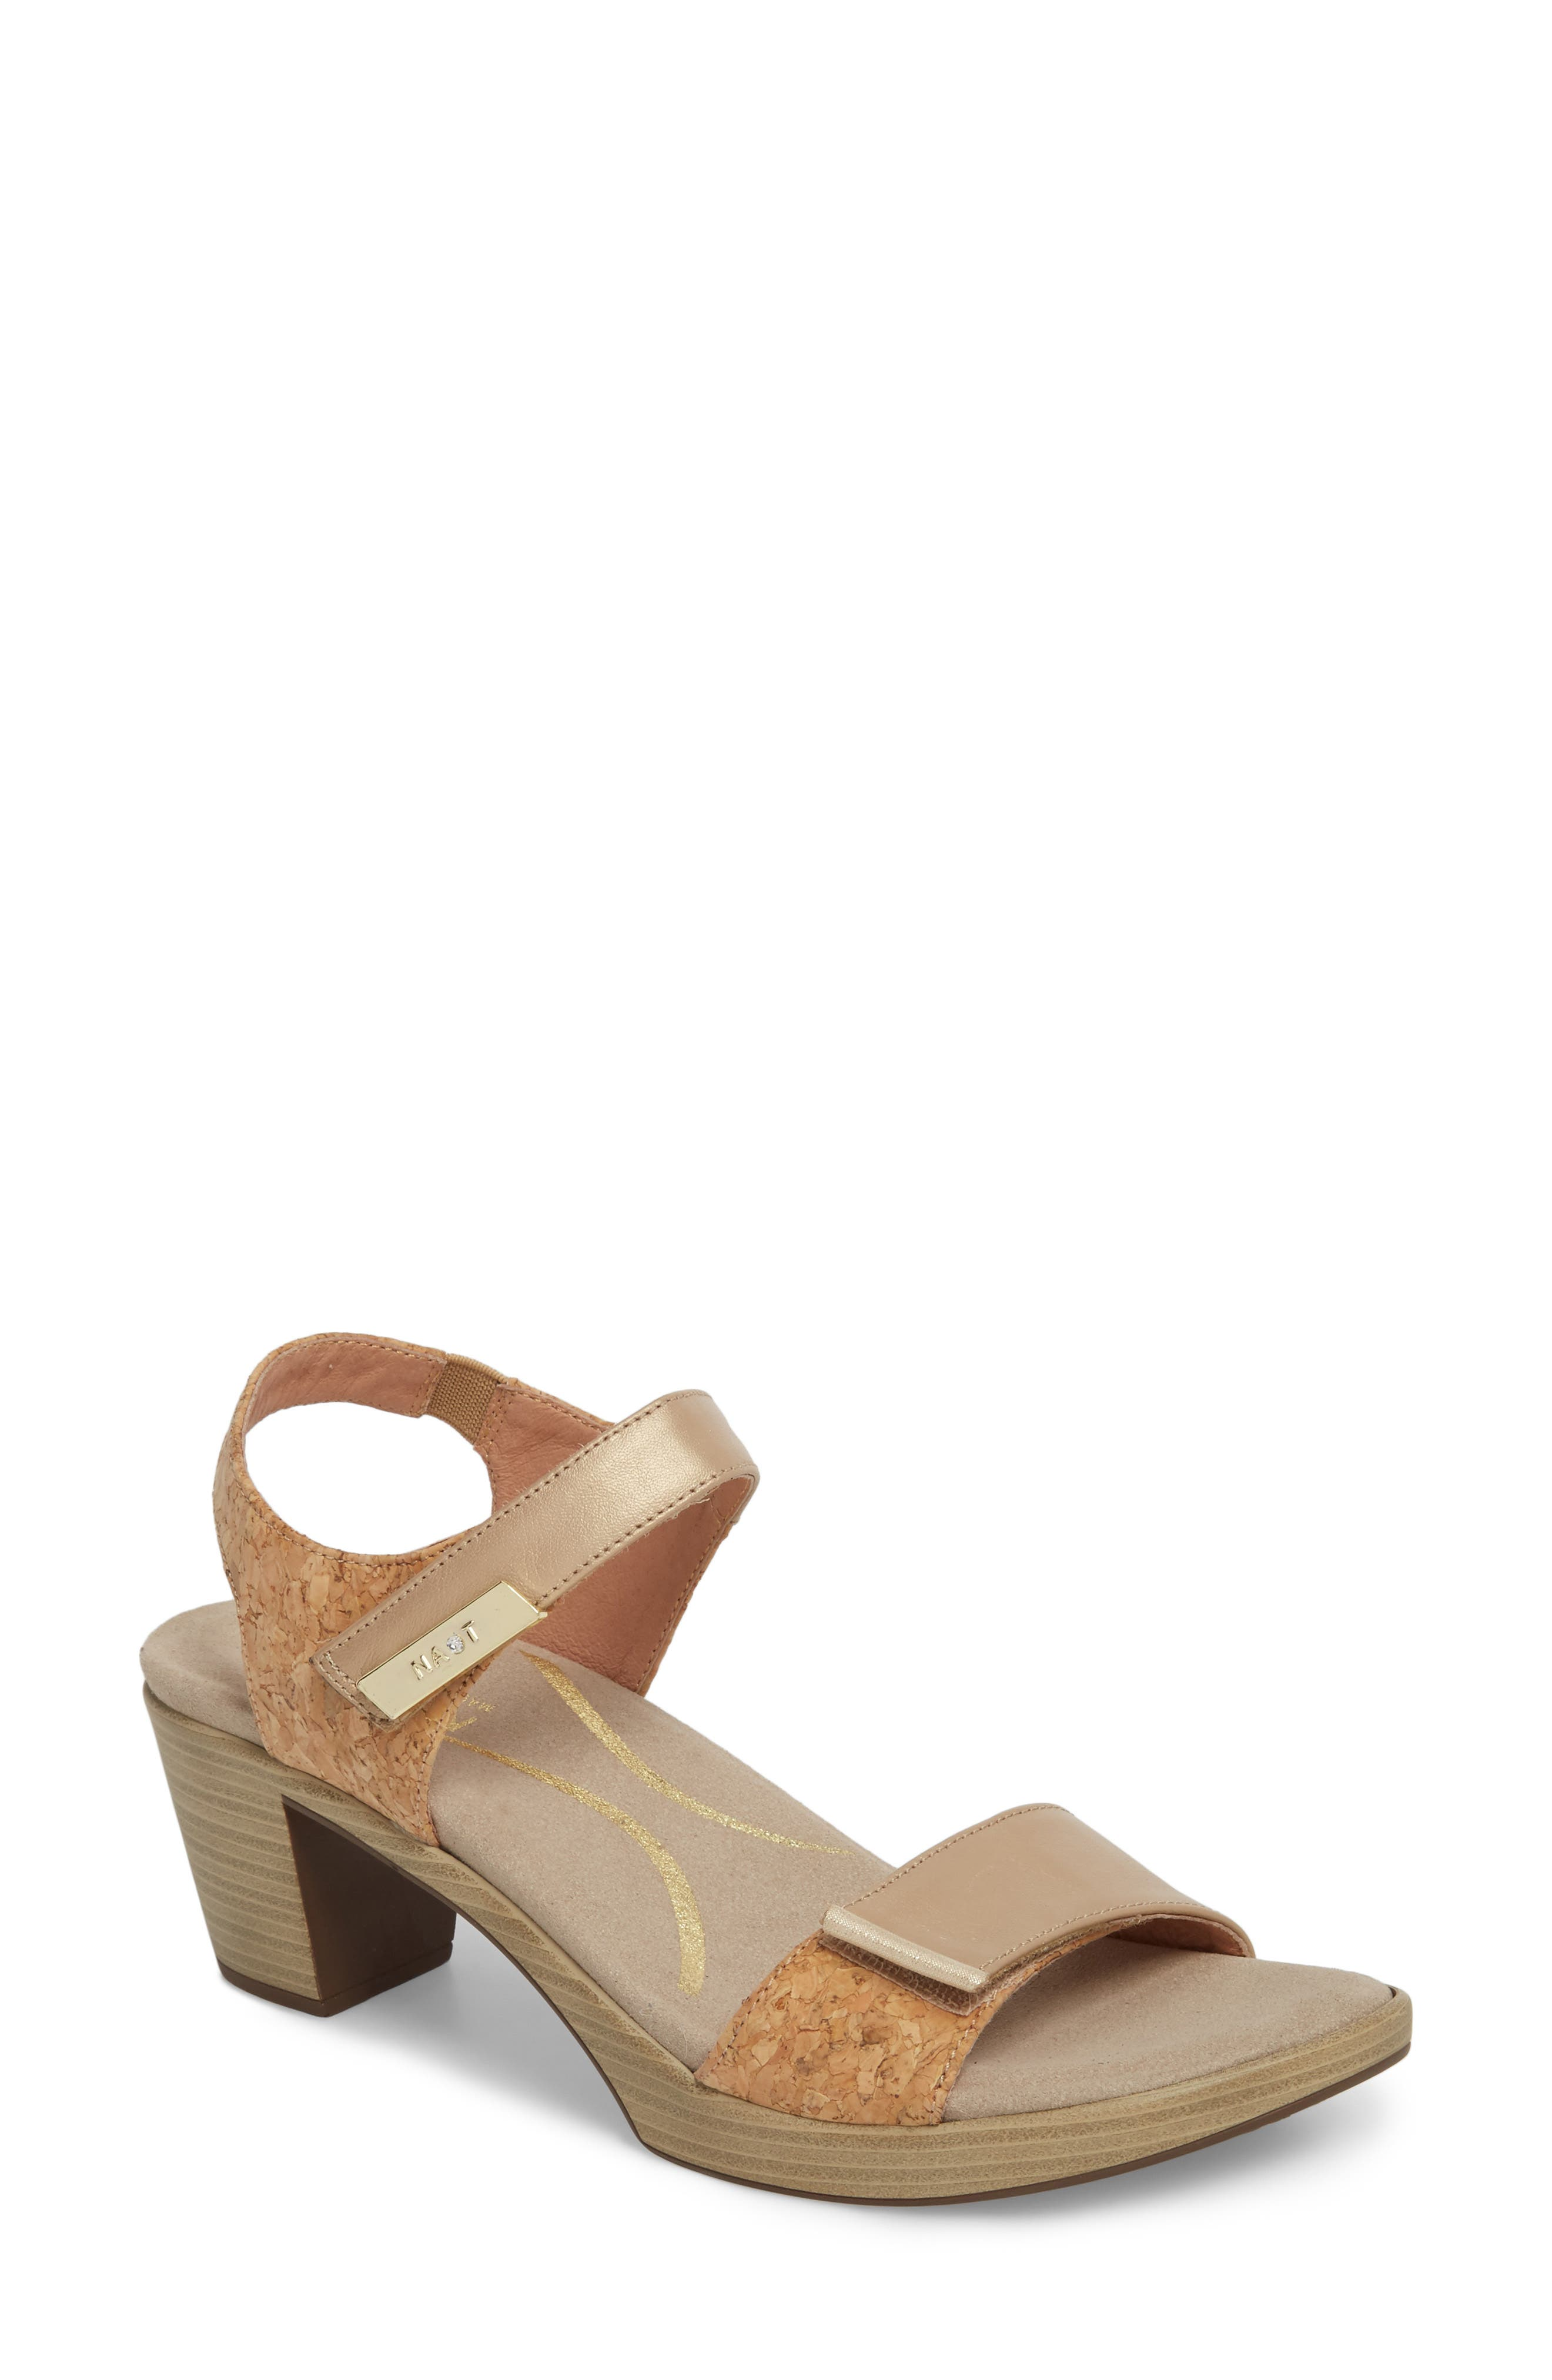 'Intact' Sandal,                         Main,                         color, CHAMPAGNE LEATHER